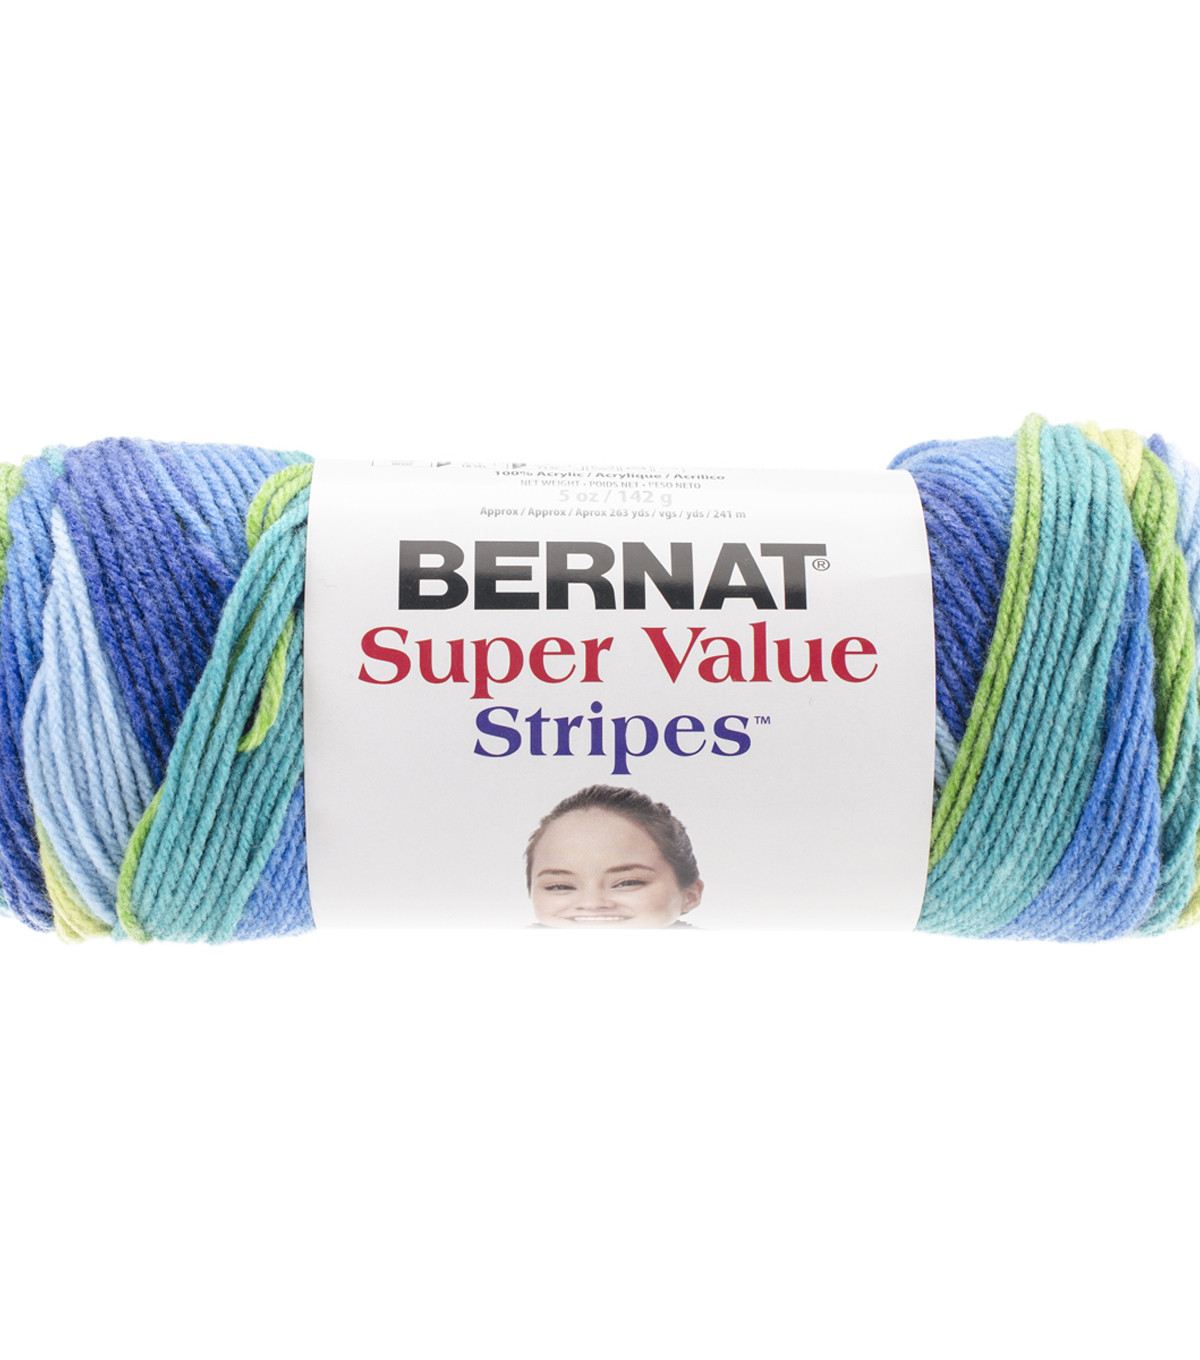 Bernat Super Value Stripes Yarn JoAnn